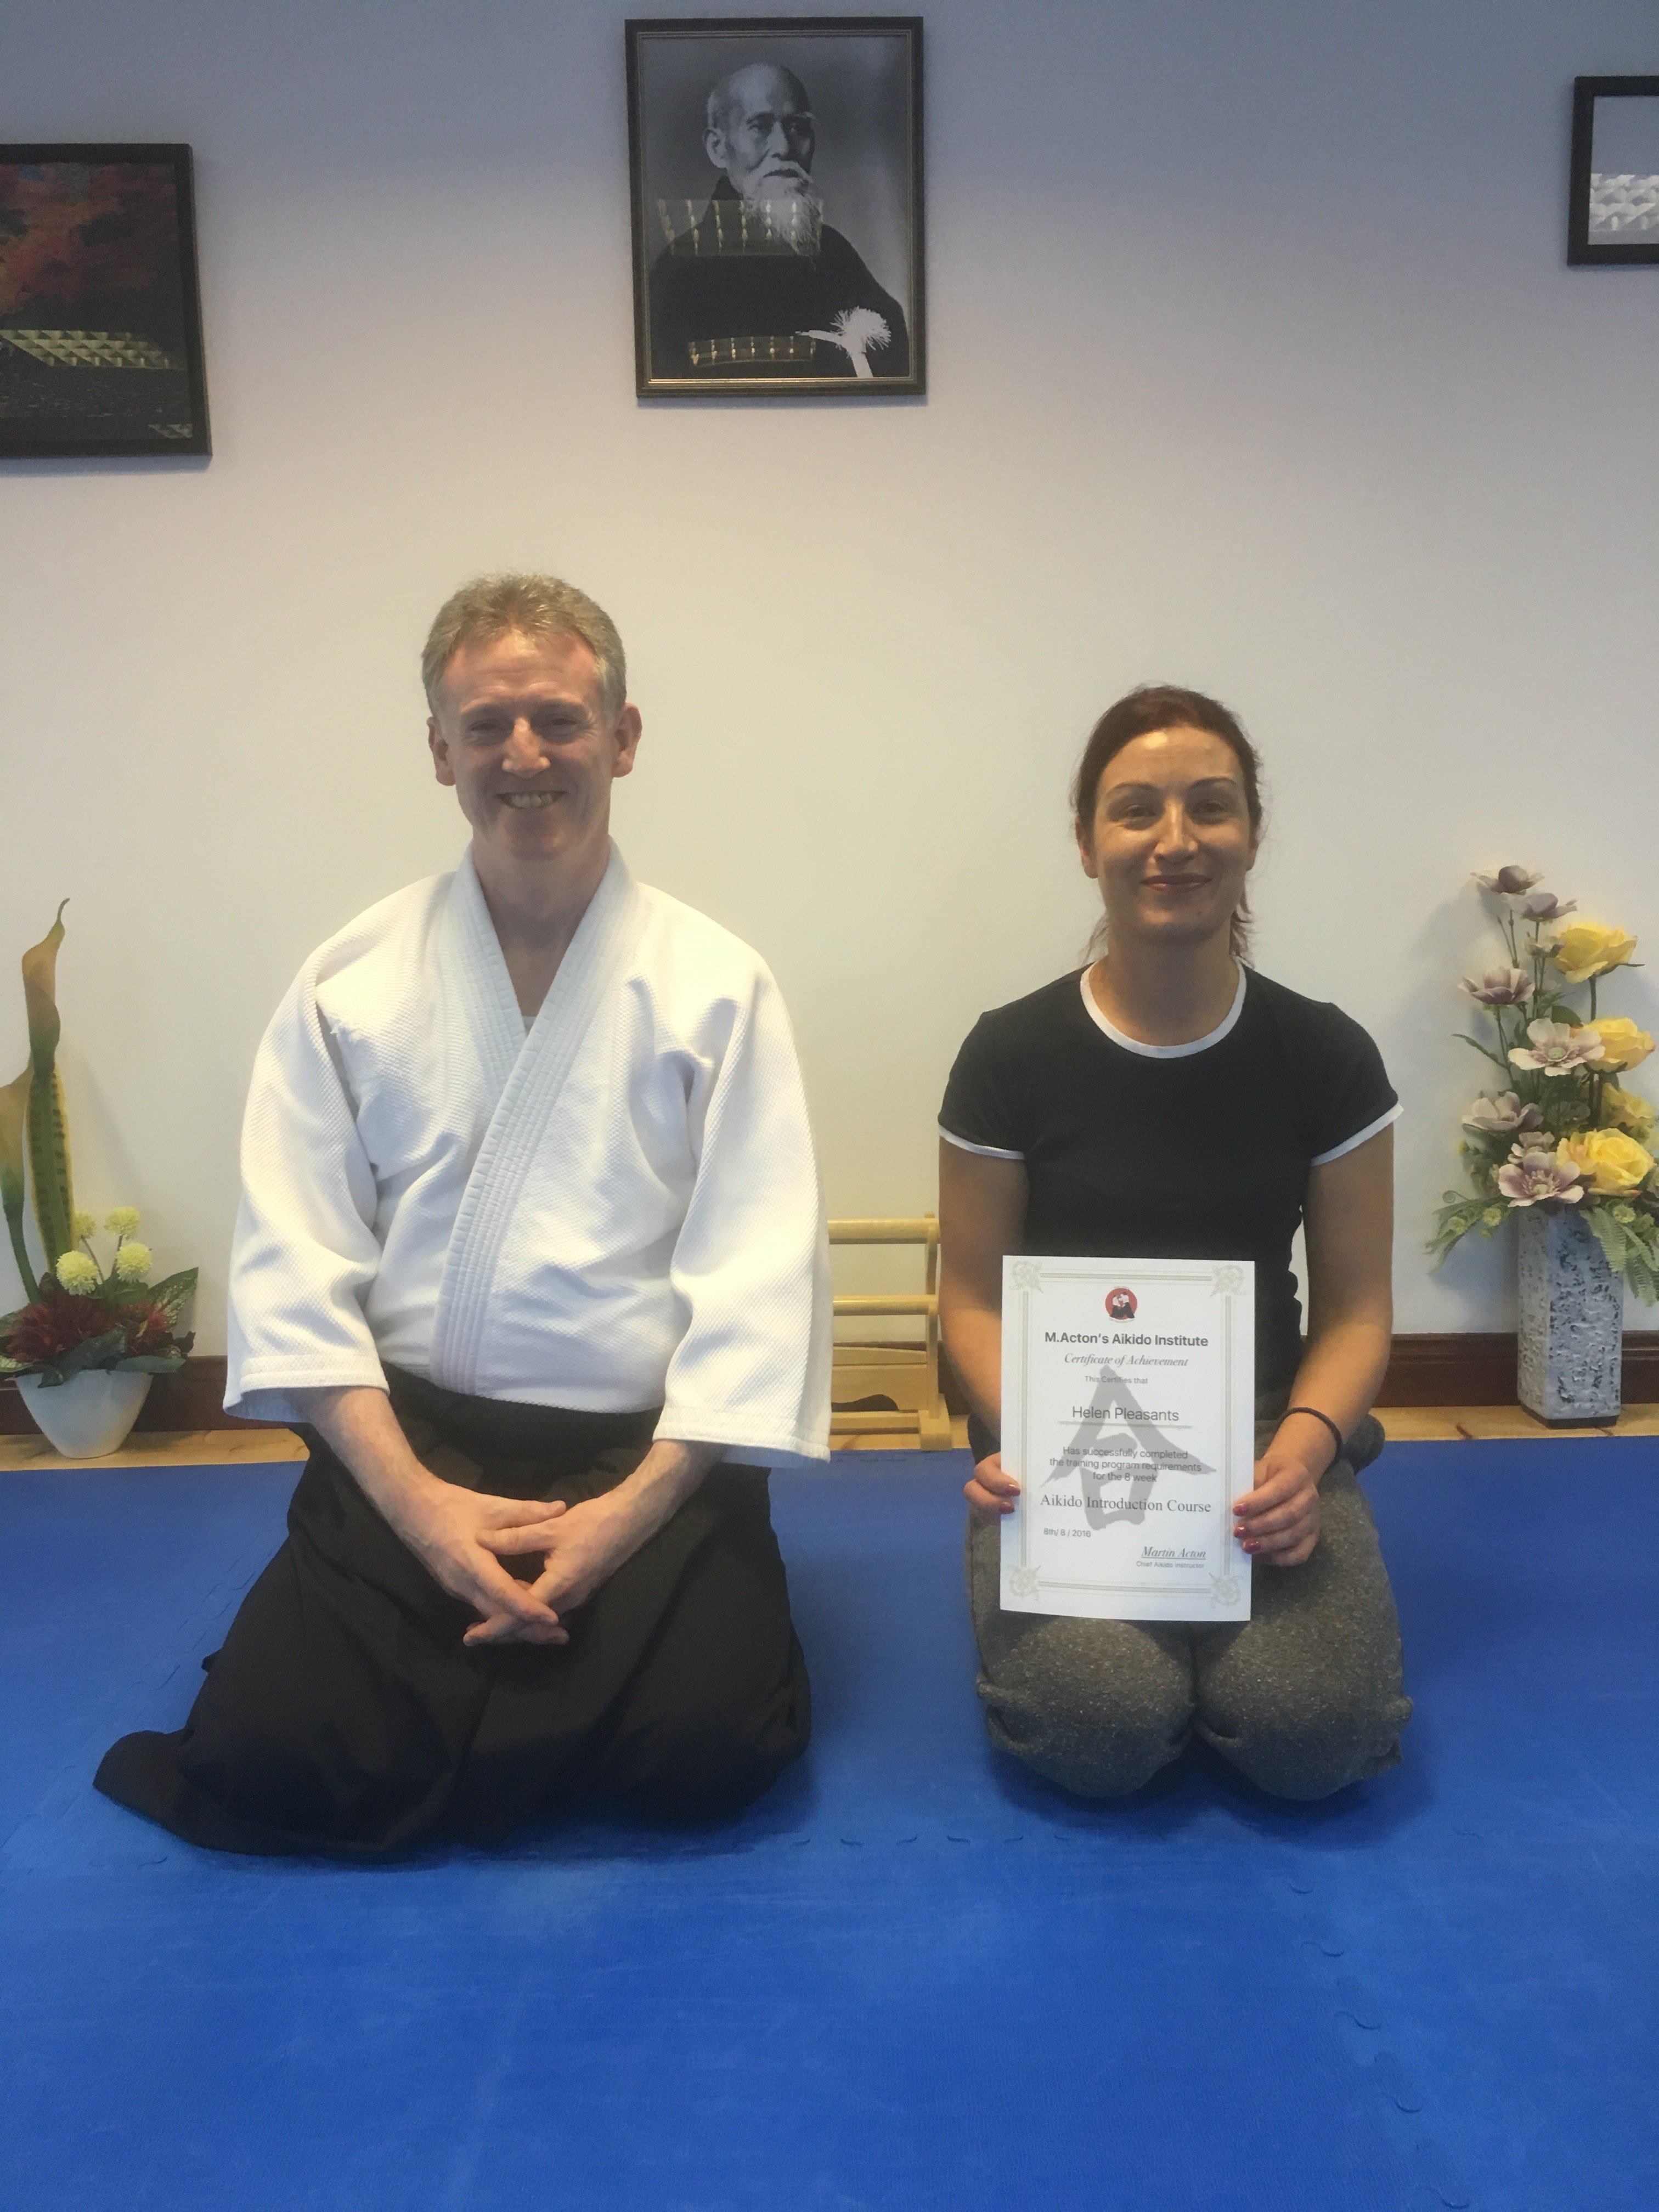 Teach and student with certificate kneeling